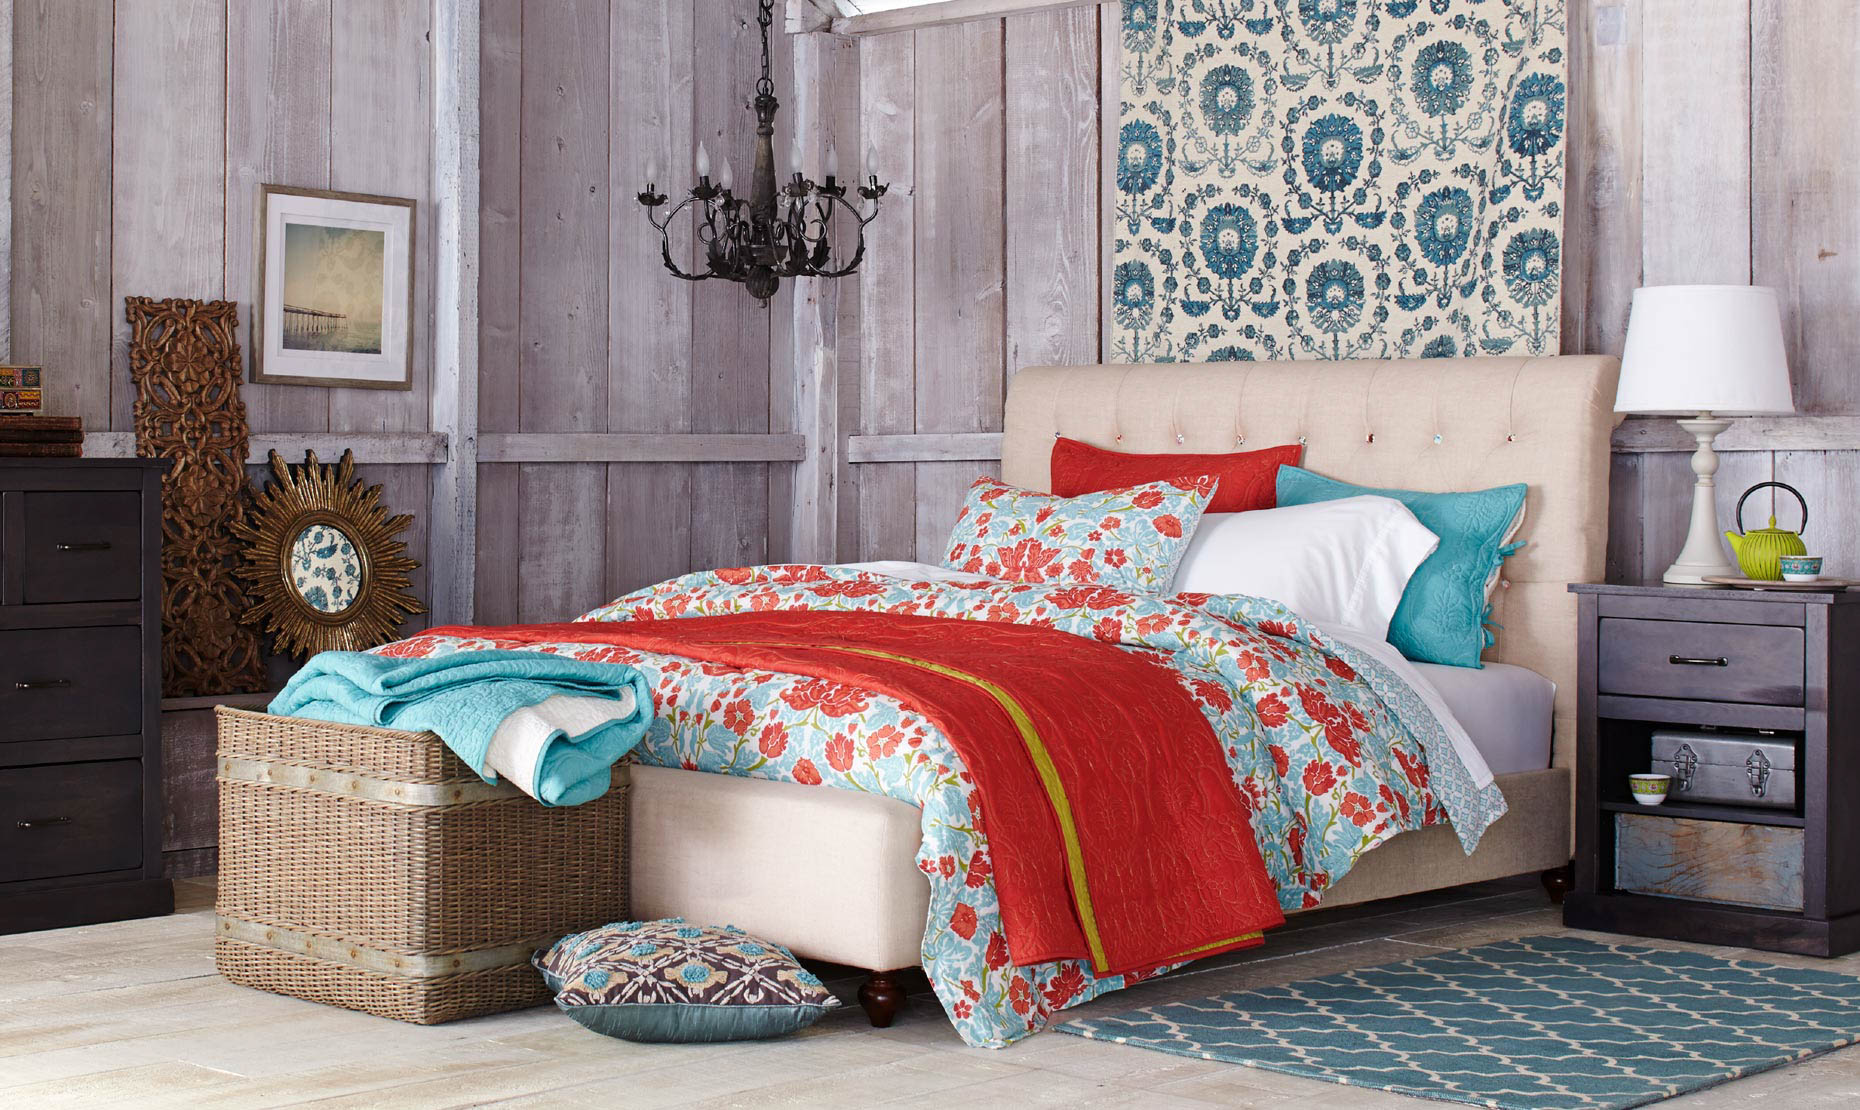 bedroom with red and blue floral print bedspread and blue rug and painting